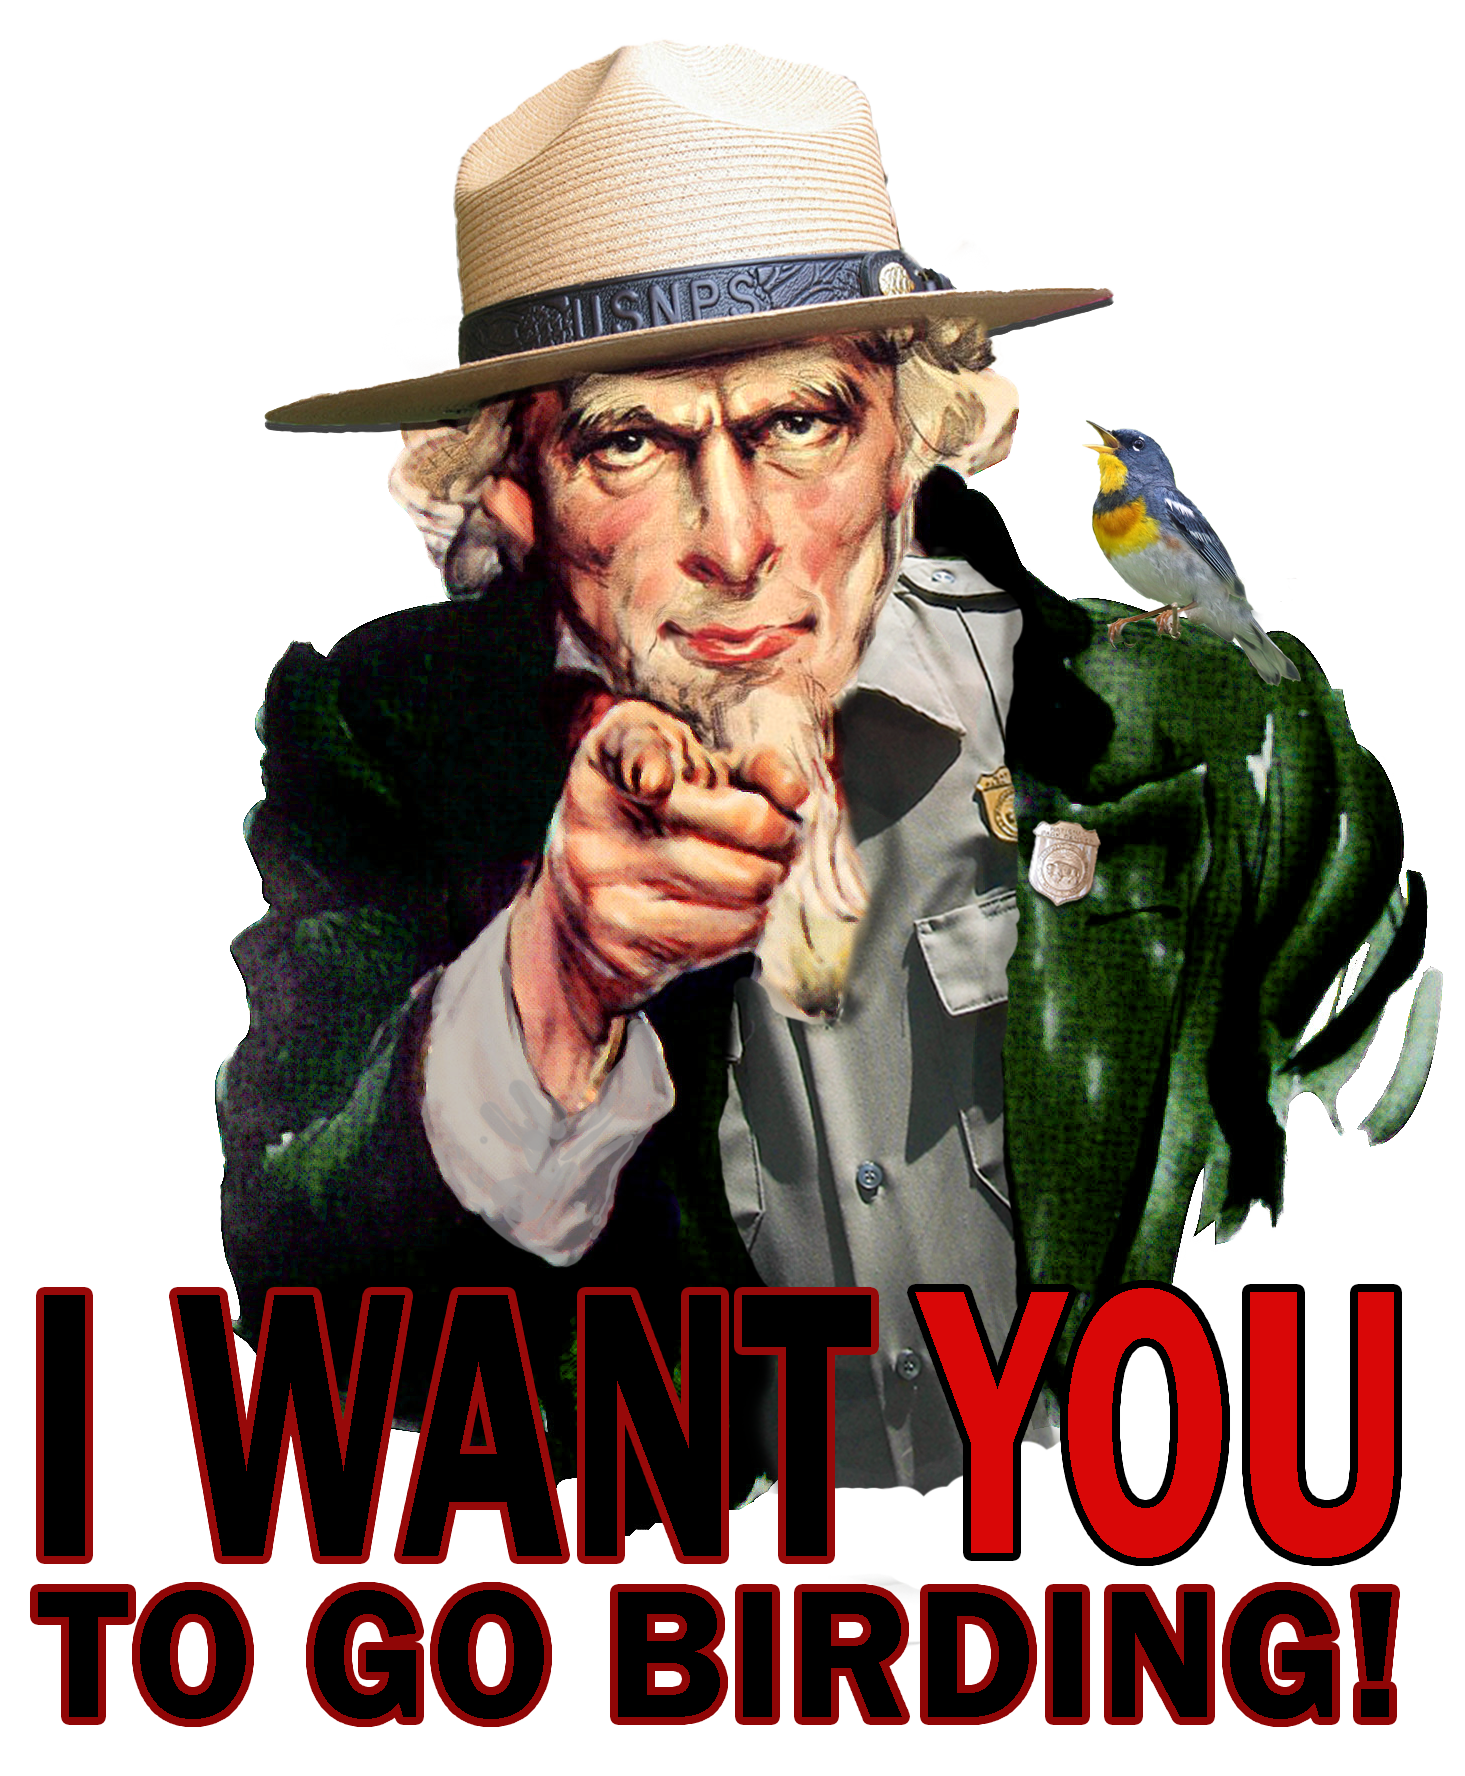 Uncle Sam wants YOU to go birding!